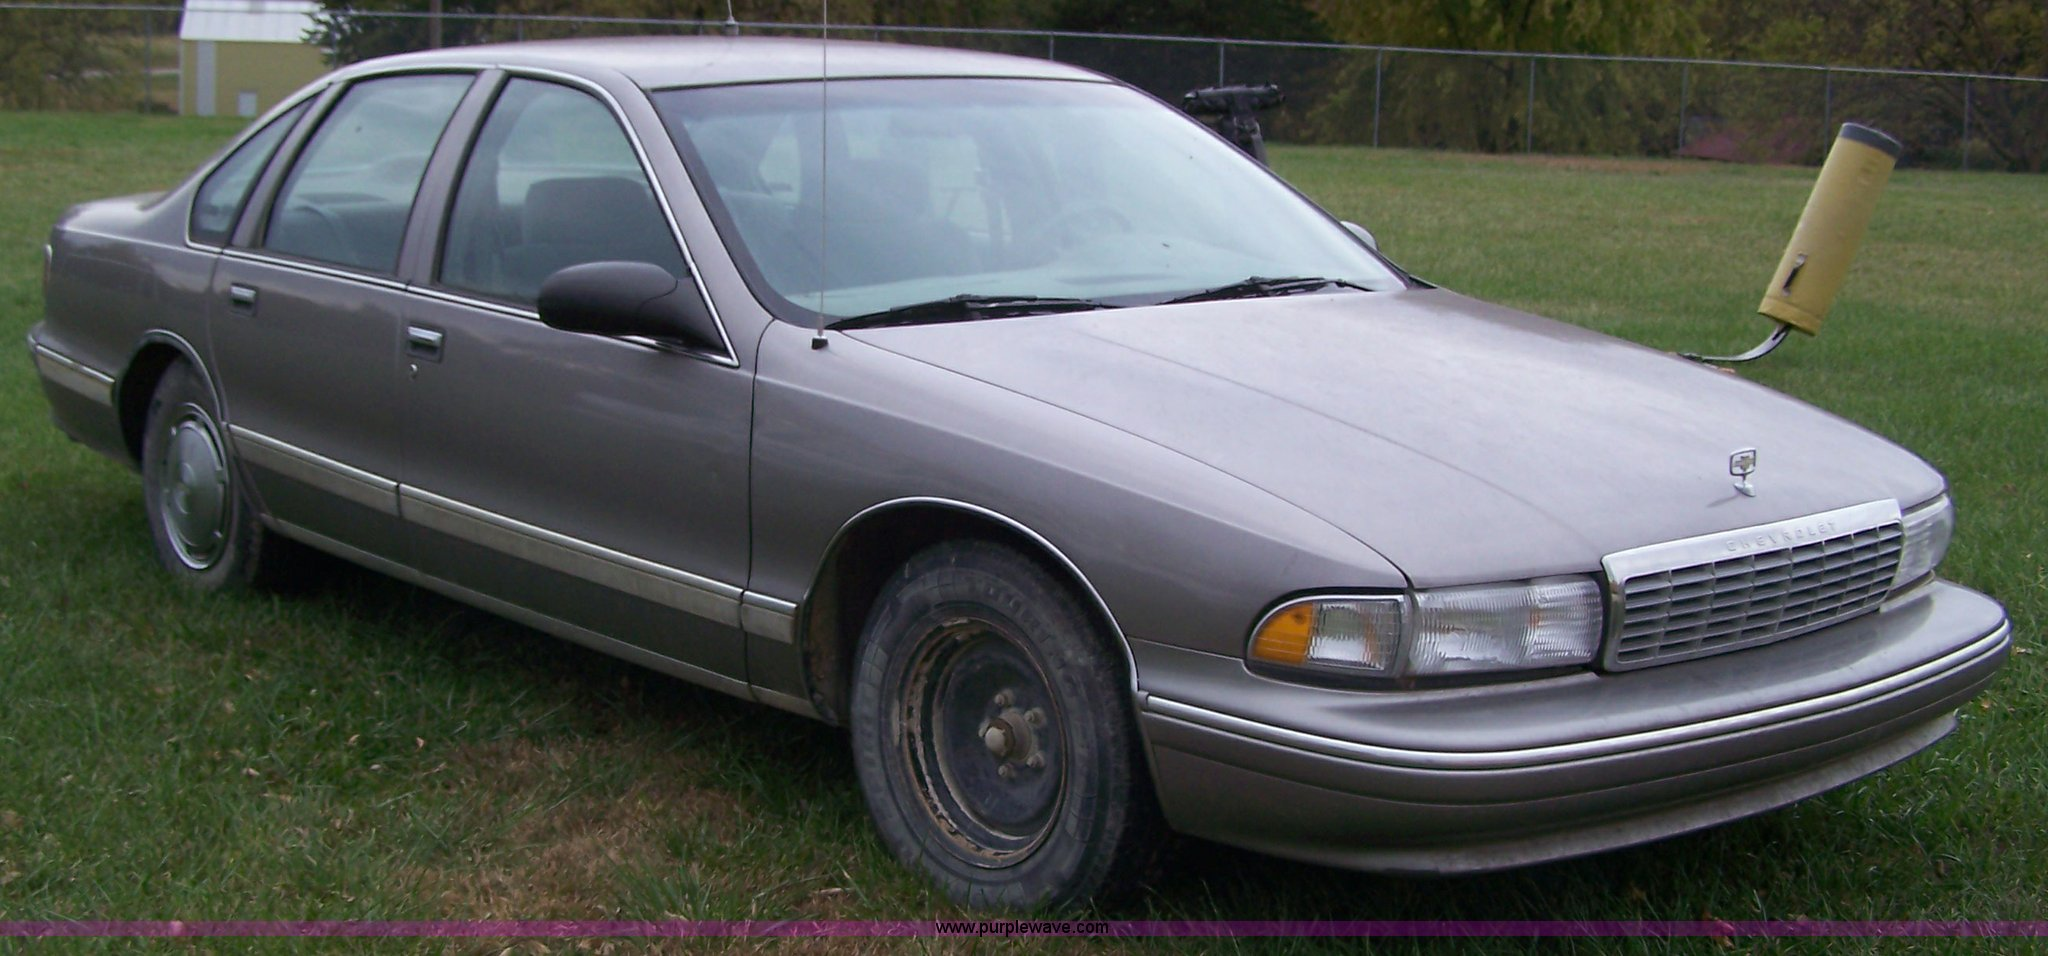 1995 Chevrolet Caprice Classic | Item D8536 | SOLD! November